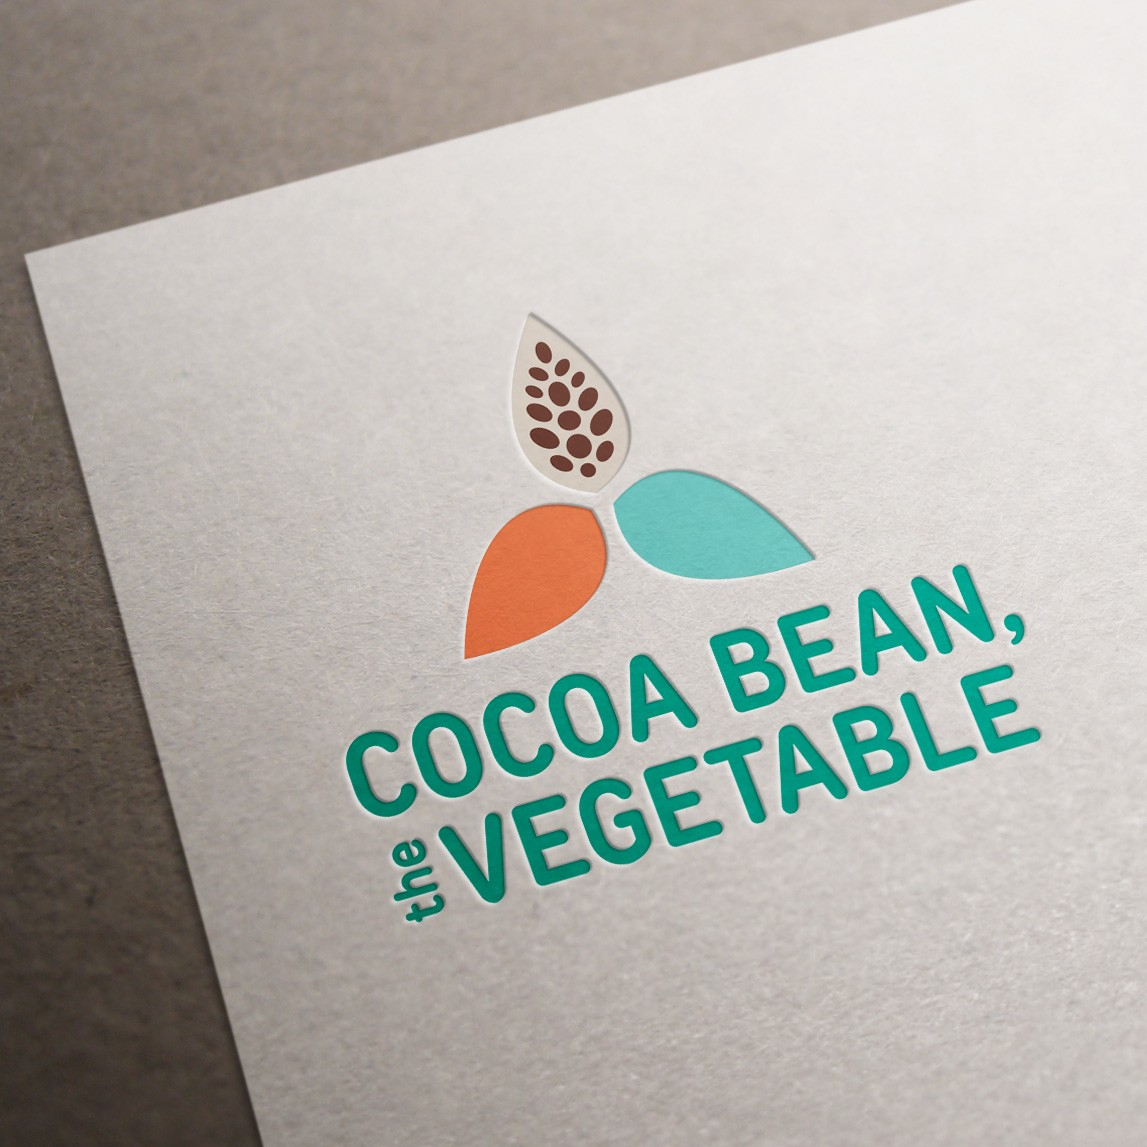 Logo Design Montreal - Cocoa Bean the Vegetable